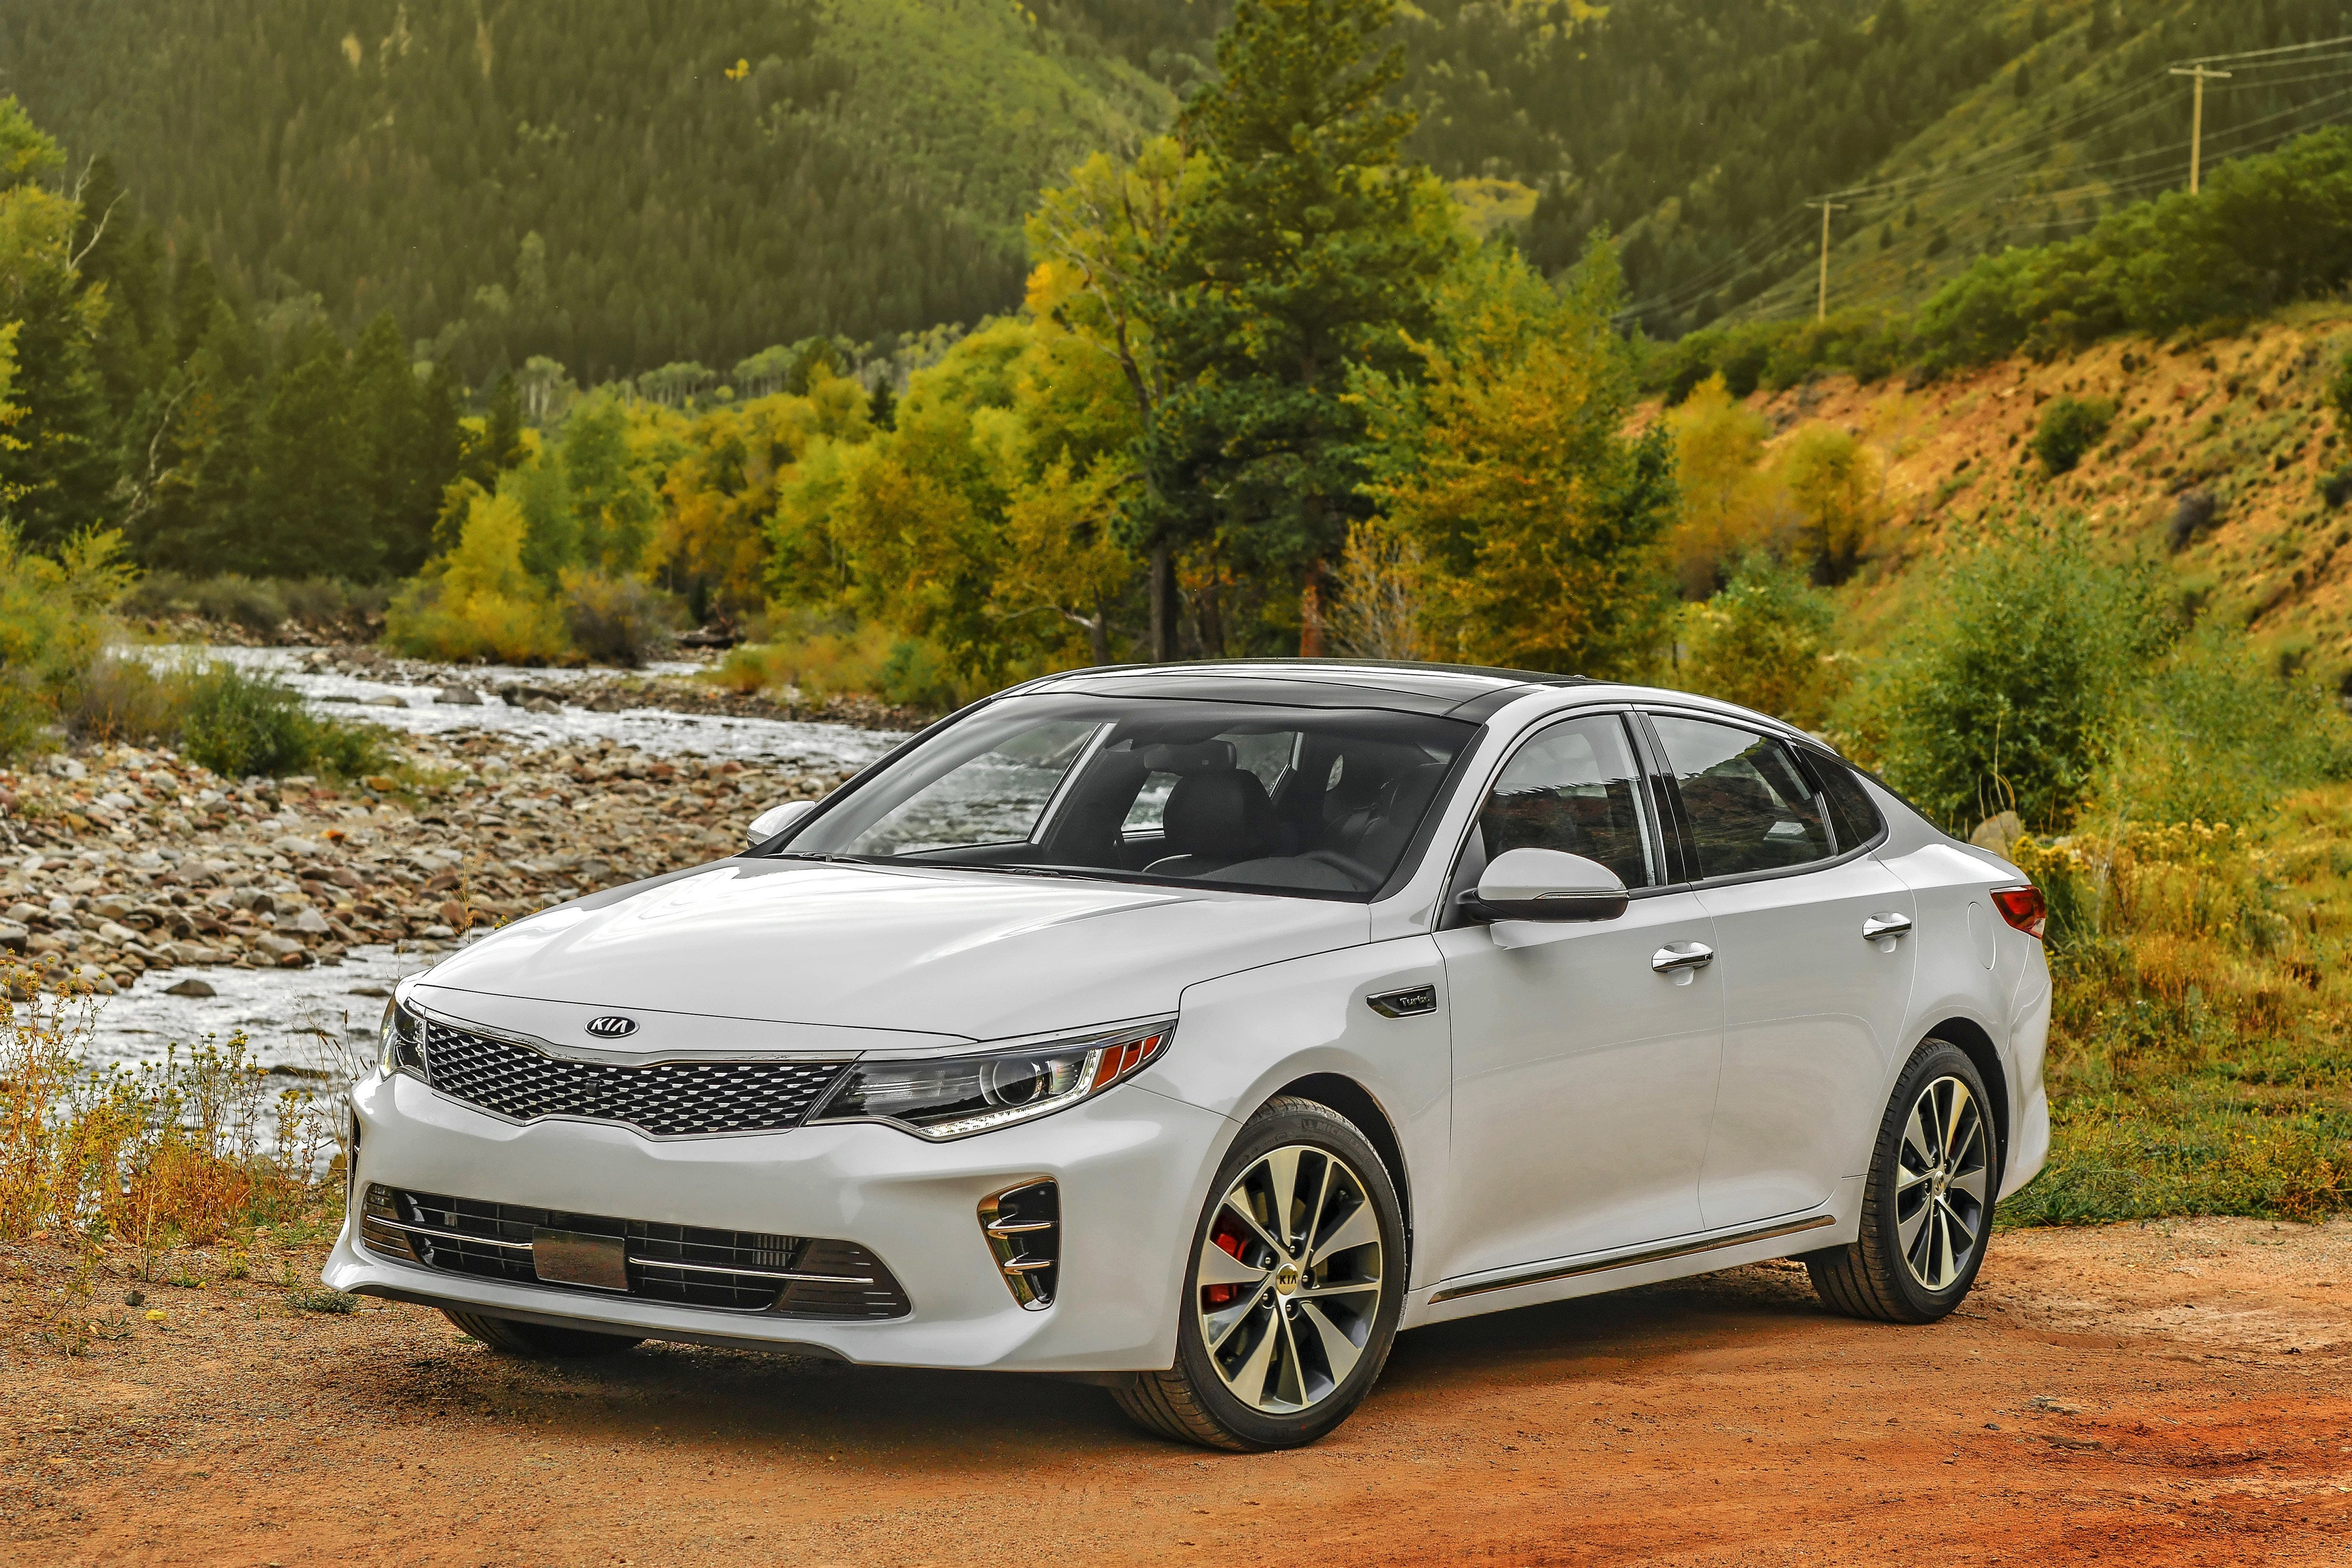 Lovely This Photo Provided By Kia Shows The 2017 Kia Optima, A Car That Might Be  The Right Choice For A College Student. It Offers Good Looks, Lots Of  Safety ...